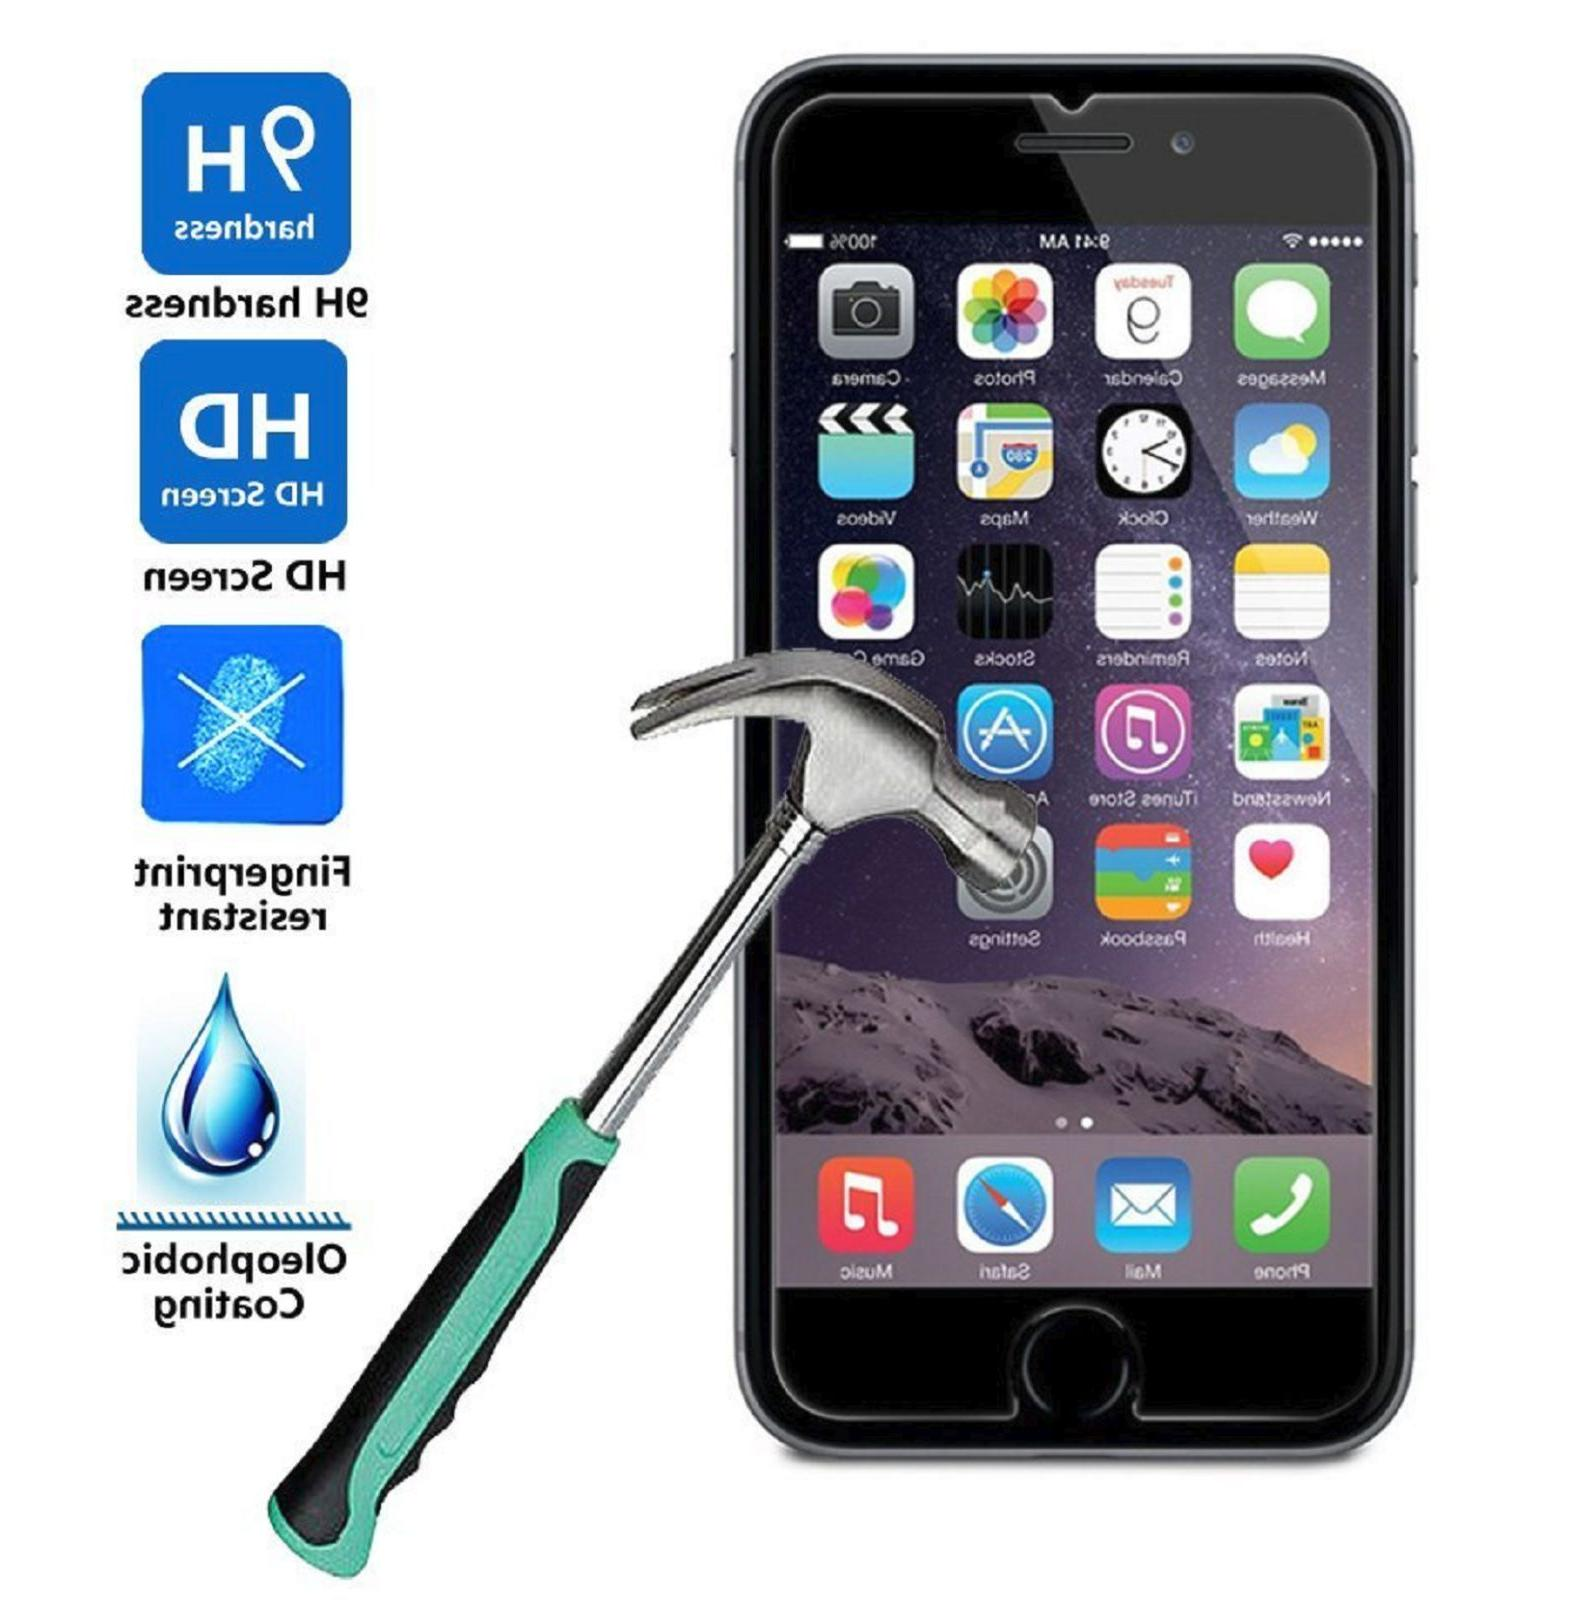 2-PACK Premium Real Tempered Glass Film for iPhone 6 / 6